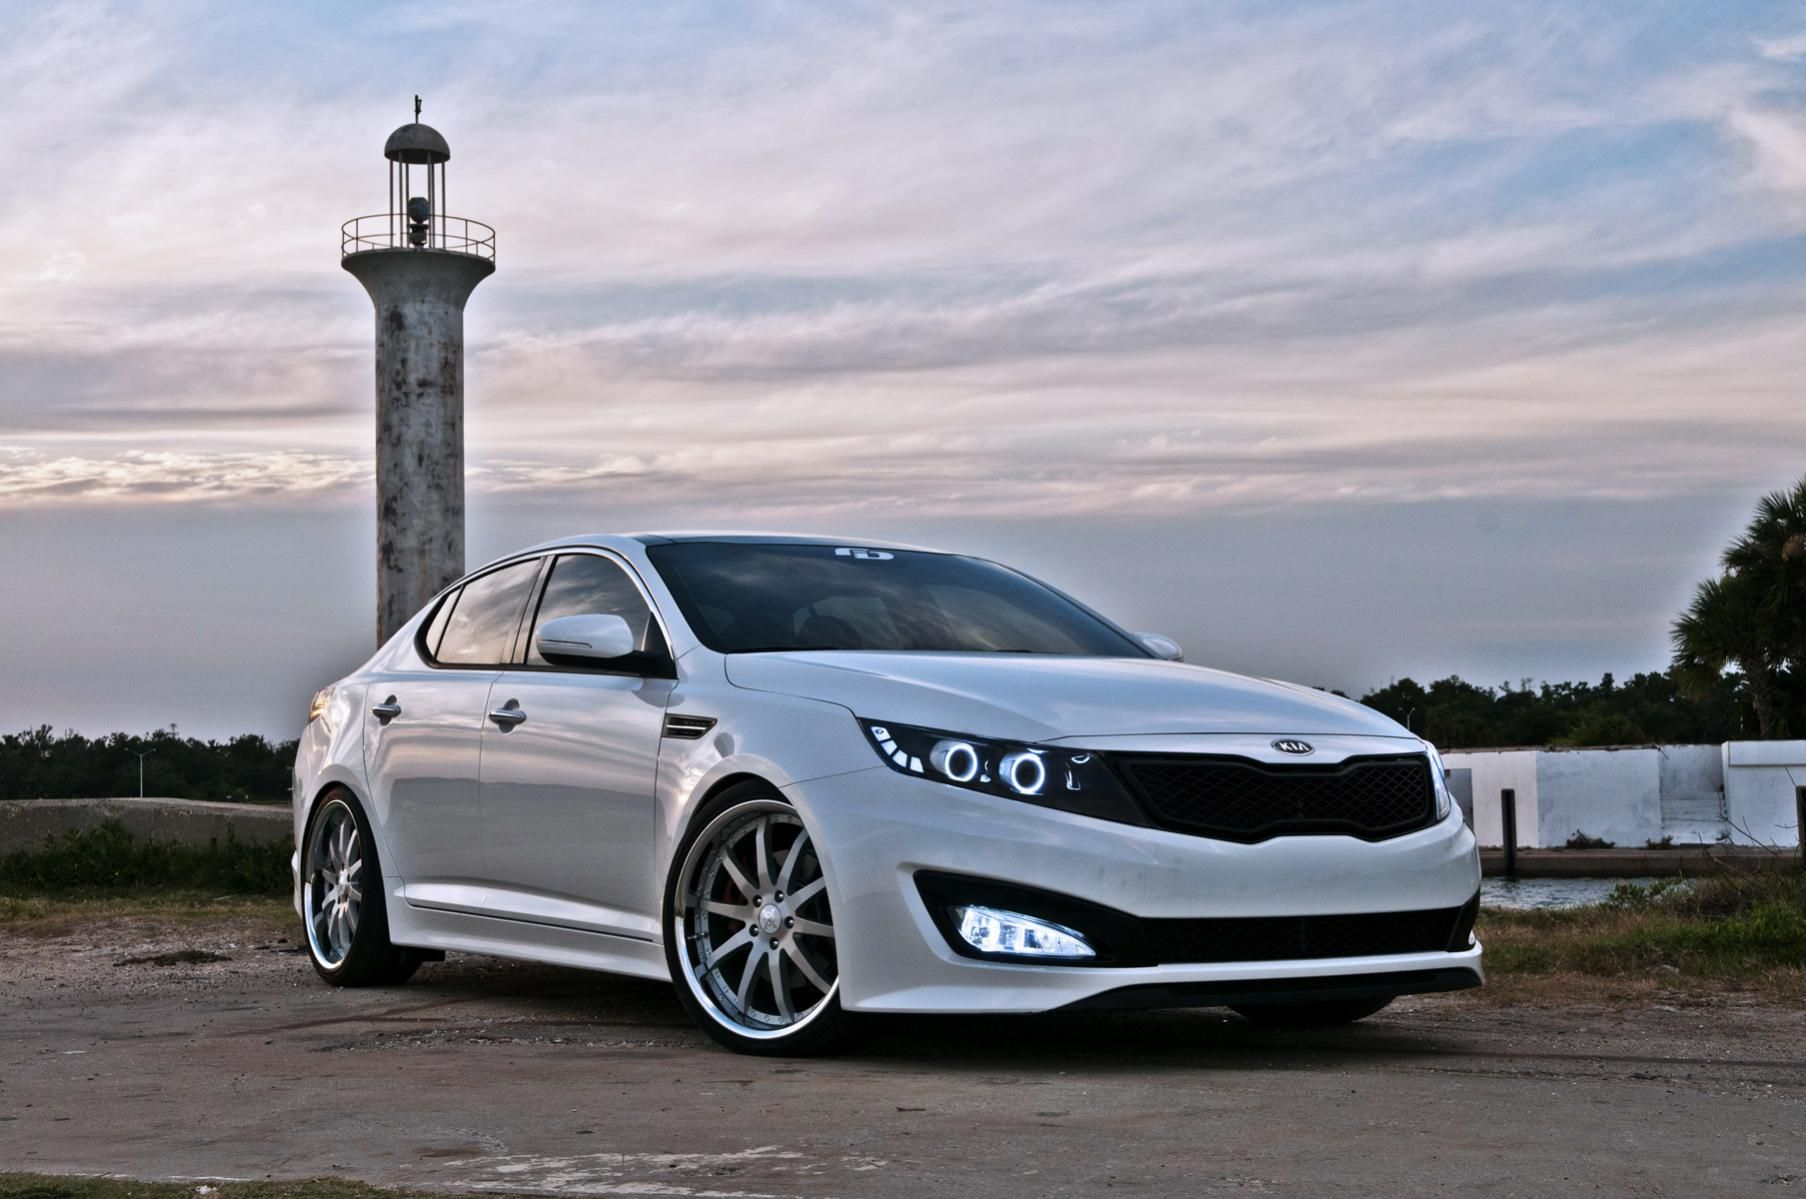 Kia optima my kia optima w fusion design kia optima my kia optima w fusion design headlightsfusiondesignlighting sciox Images